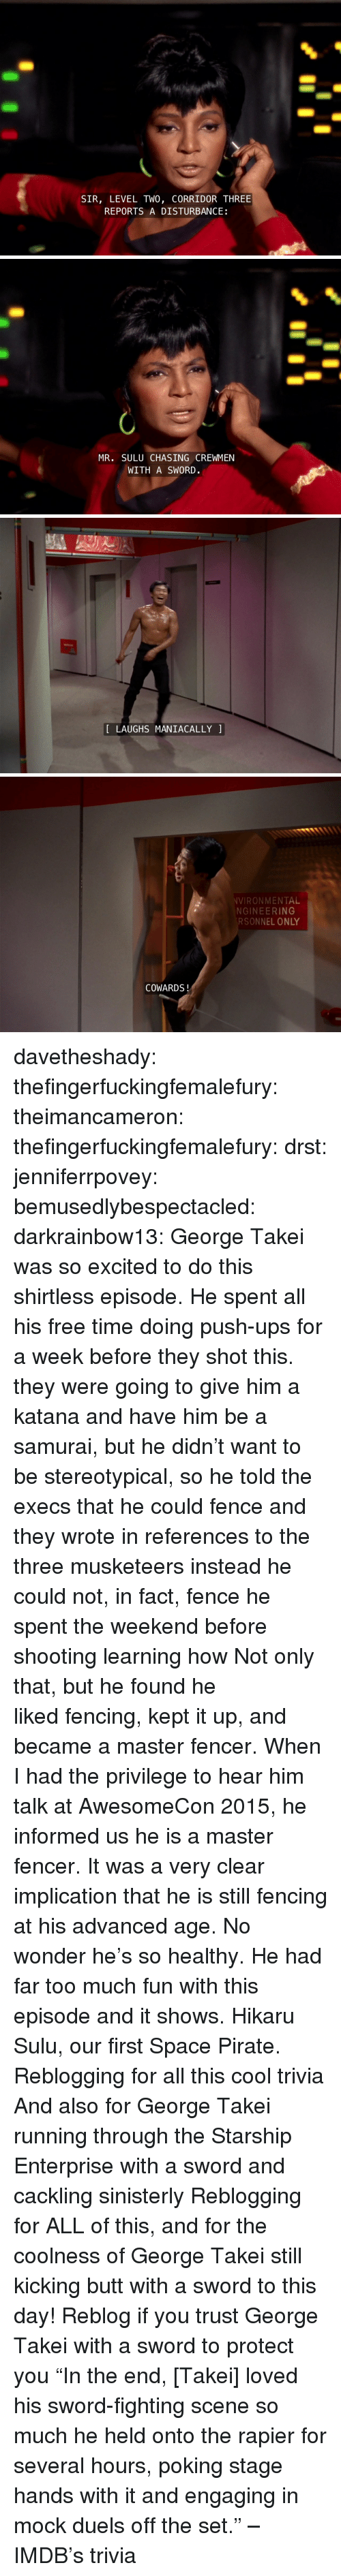 """stereotypical: SIR, LEVEL TWO, CORRIDOR THREE  REPORTS A DISTURBANCE   MR. SULU CHASING CREWMEN  WITH A SWORD.   LAUGHS MANIACALLY   VIRONMENTAL  NGINEERING  RSONNEL ONLY  COWARDS! davetheshady:  thefingerfuckingfemalefury:  theimancameron:  thefingerfuckingfemalefury:  drst:  jenniferrpovey:  bemusedlybespectacled:  darkrainbow13:  George Takei was so excited to do this shirtless episode. He spent all his free time doing push-ups for a week before they shot this.  they were going to give him a katana and have him be a samurai, but he didn't want to be stereotypical, so he told the execs that he could fence and they wrote in references to the three musketeers instead he could not, in fact, fence he spent the weekend before shooting learning how  Not only that, but he found he likedfencing, kept it up, and became a master fencer. When I had the privilege to hear him talk at AwesomeCon 2015, he informed us he isa master fencer. It was a very clear implication that he is stillfencing at his advanced age. No wonder he's so healthy. He had fartoo much fun with this episode and it shows.  Hikaru Sulu, our first Space Pirate.   Reblogging for all this cool trivia And also for George Takei running through the Starship Enterprise with a sword and cackling sinisterly   Reblogging for ALL of this, and for the coolness of George Takei still kicking butt with a sword to this day!  Reblog if you trust George Takei with a sword to protect you  """"In the end, [Takei] loved his sword-fighting scene so much he held onto the rapier for several hours, poking stage hands with it and engaging in mock duels off the set."""" – IMDB's trivia"""